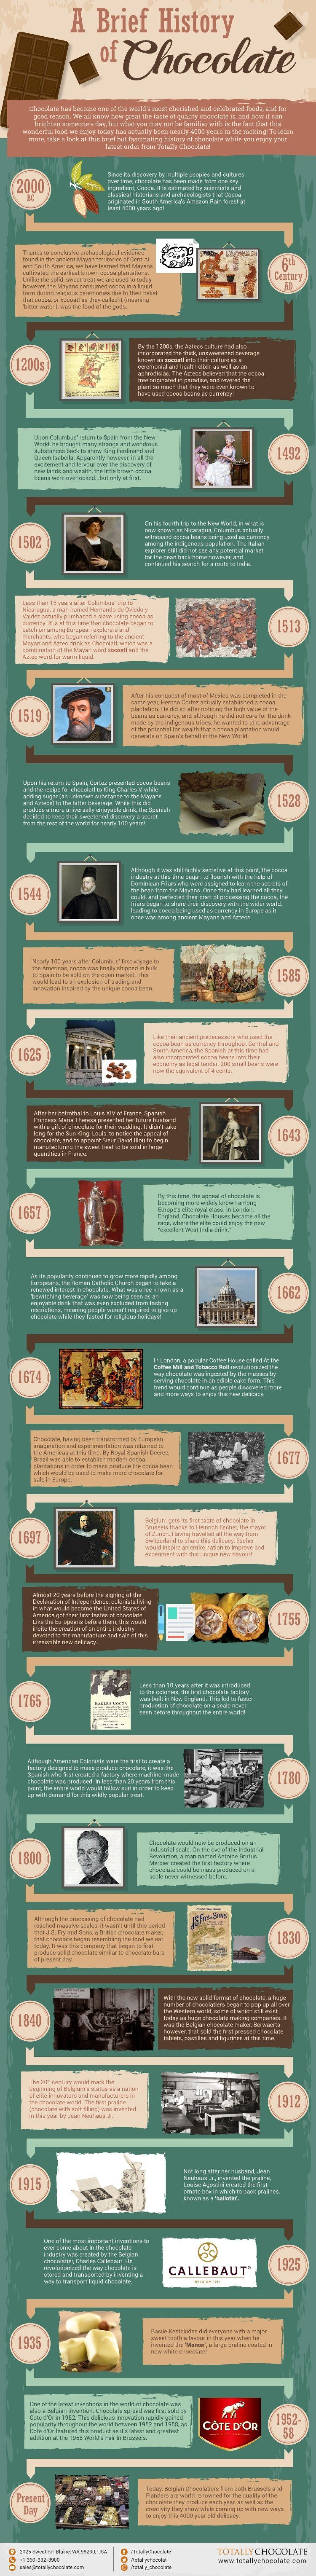 A Brief History of Chocolate Infographic